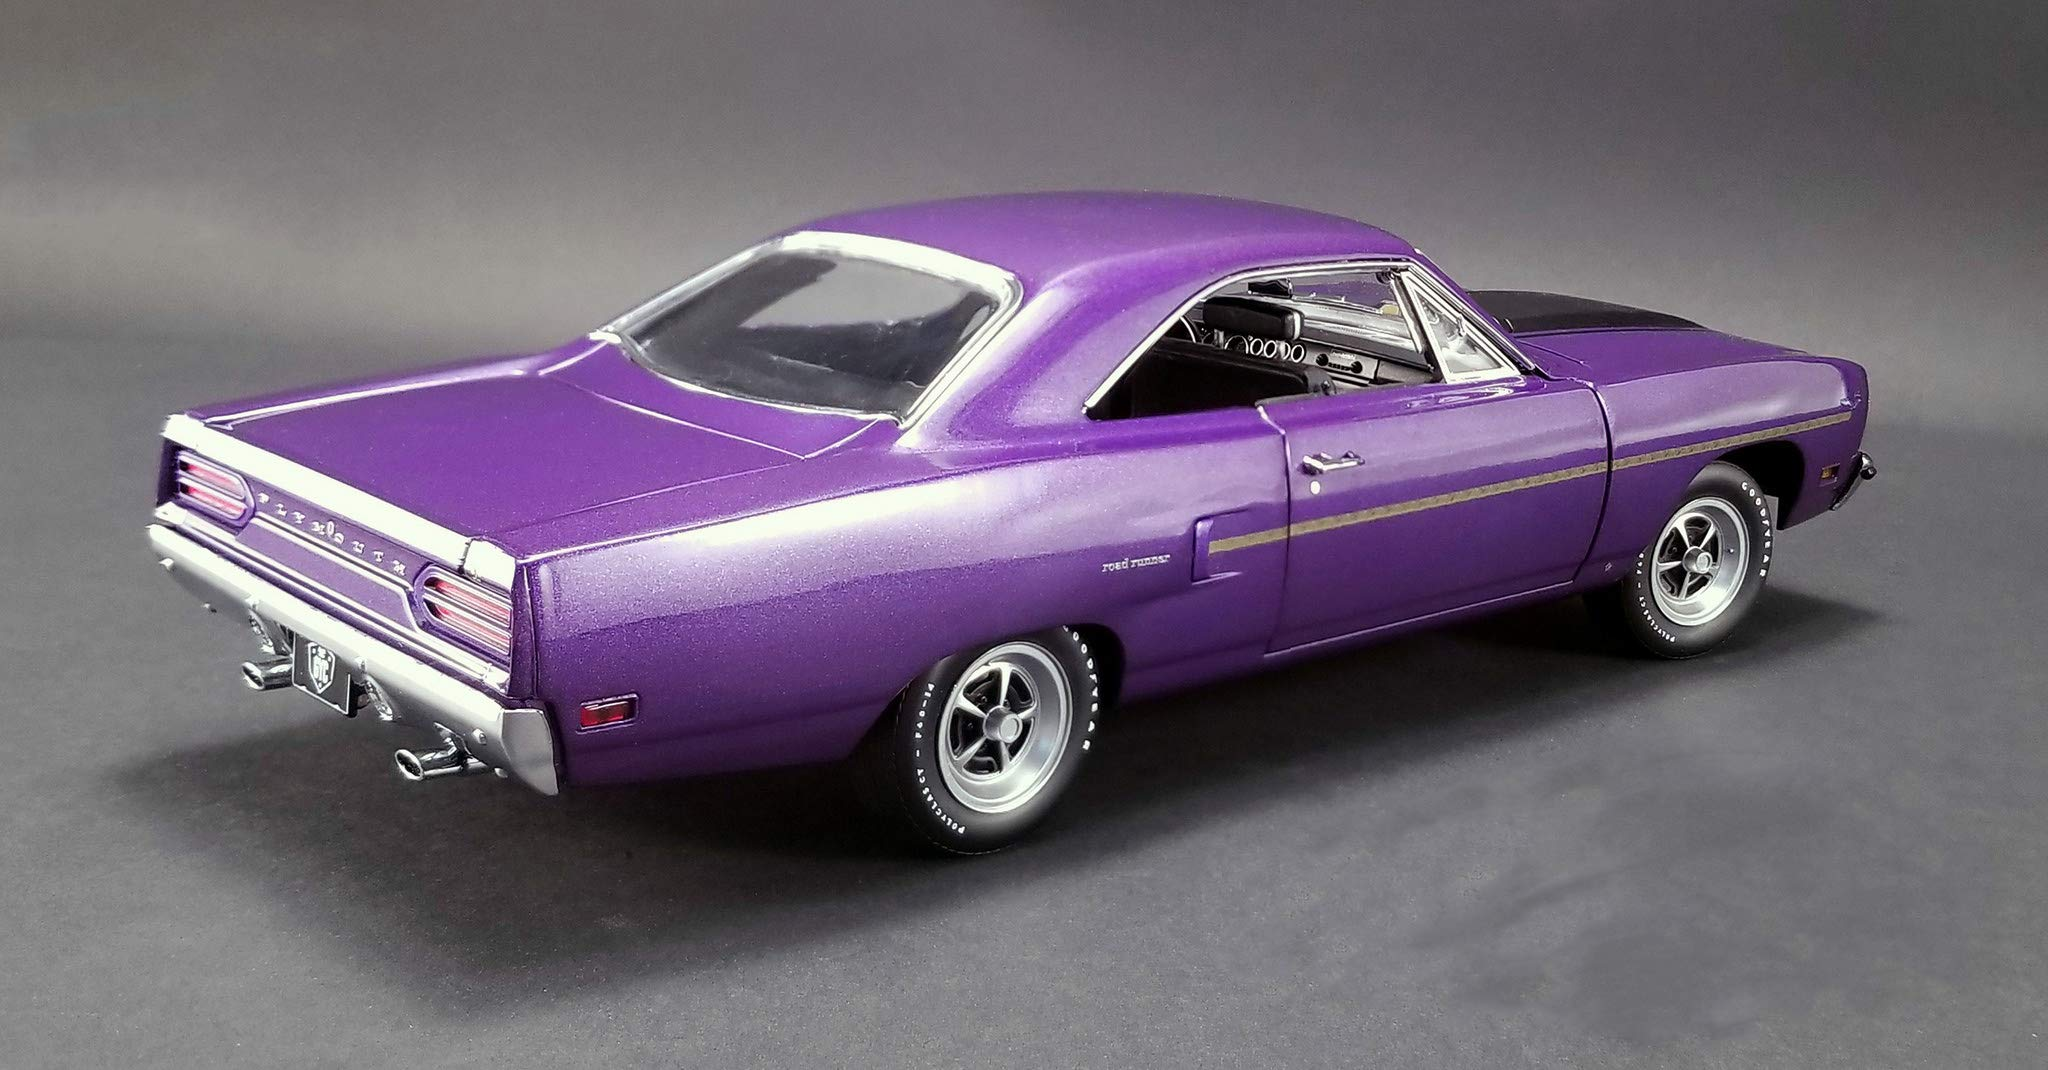 1970 Plymouth Road Runner Purple Graveyard Carz (2012) TV Series (Season 1,''Runnin' Down a Dream) Limited Edition to 732 Pieces Worldwide 1/18 Diecast Model Car by GMP 18897